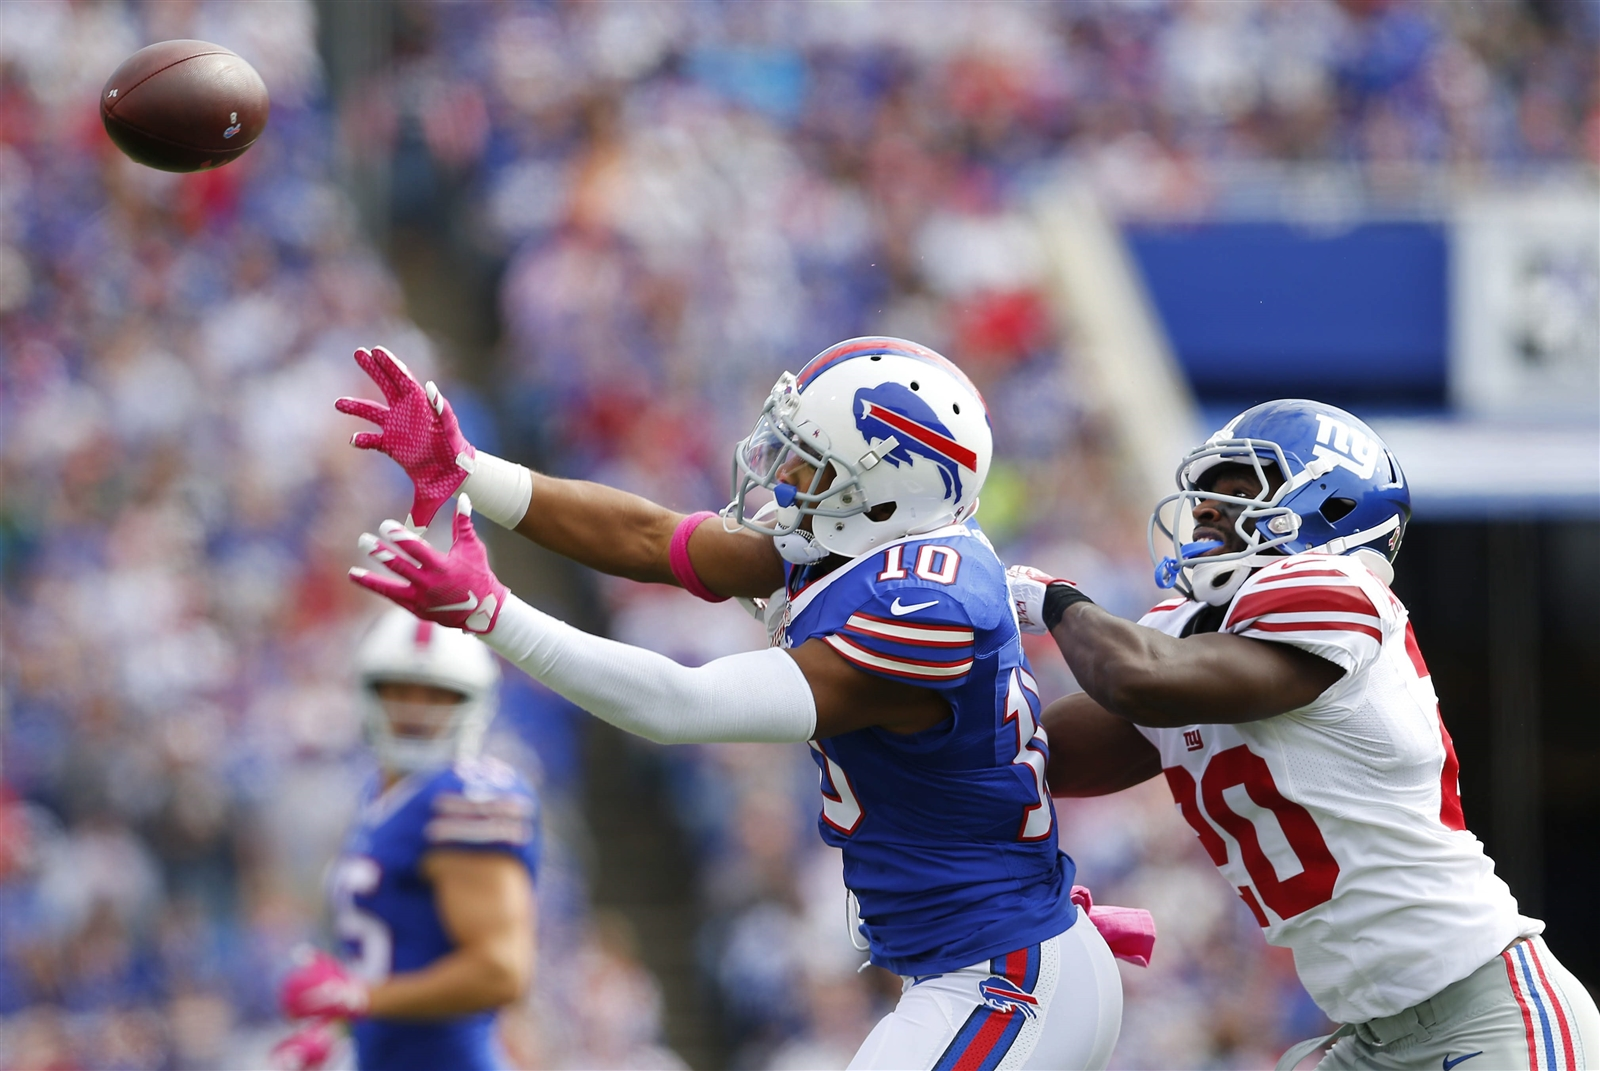 The Bills' Robert Woods can't make a catch while defended by the Giants' Price Amukamara. (Mark Mulville/The Buffalo News)